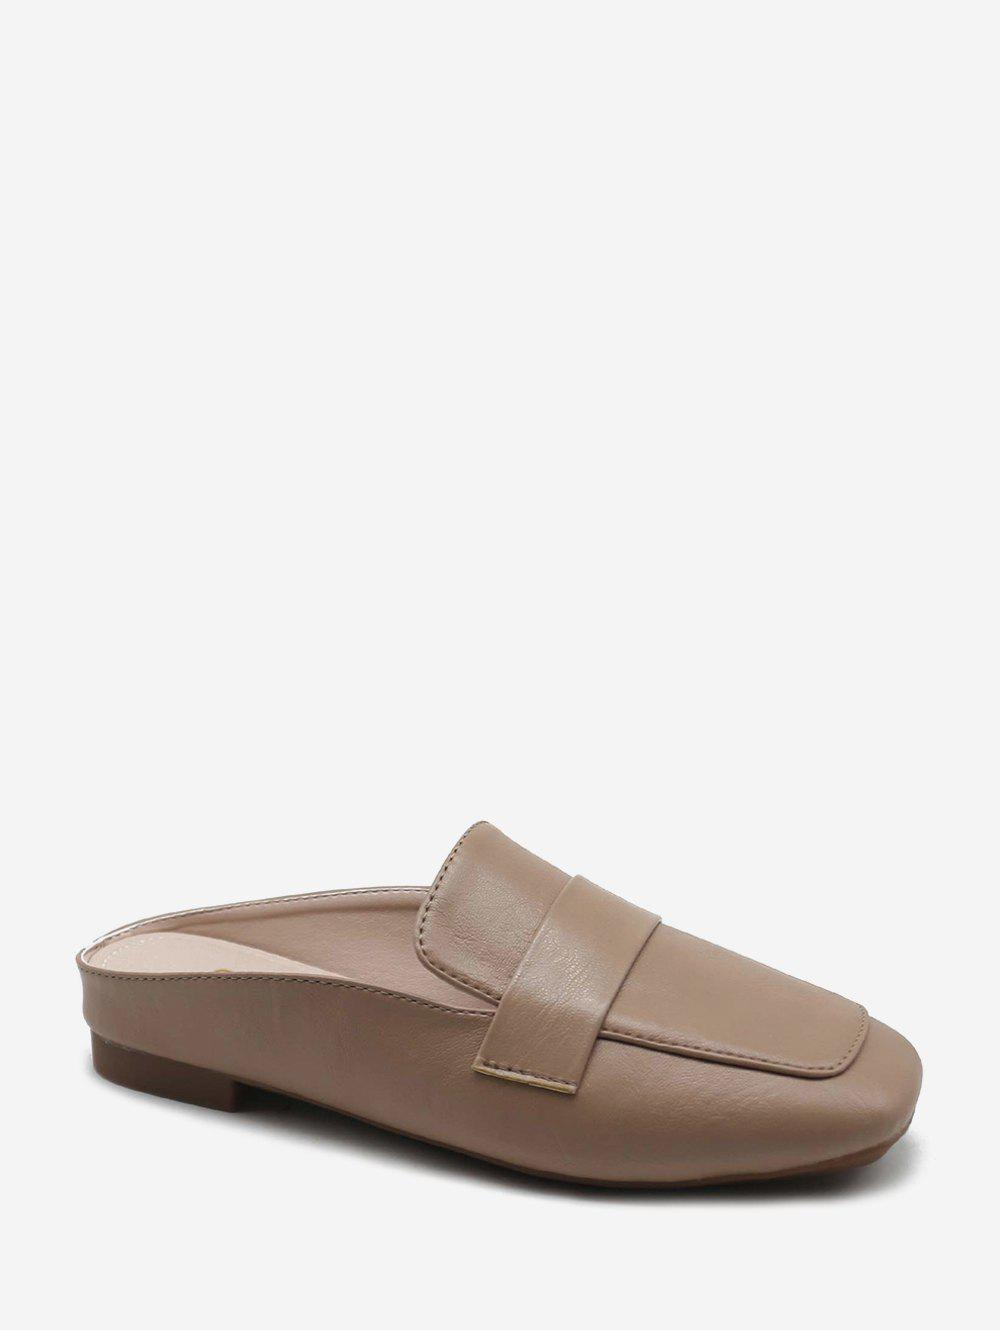 Buy Plain Square Toe Leather Loafer Shoes